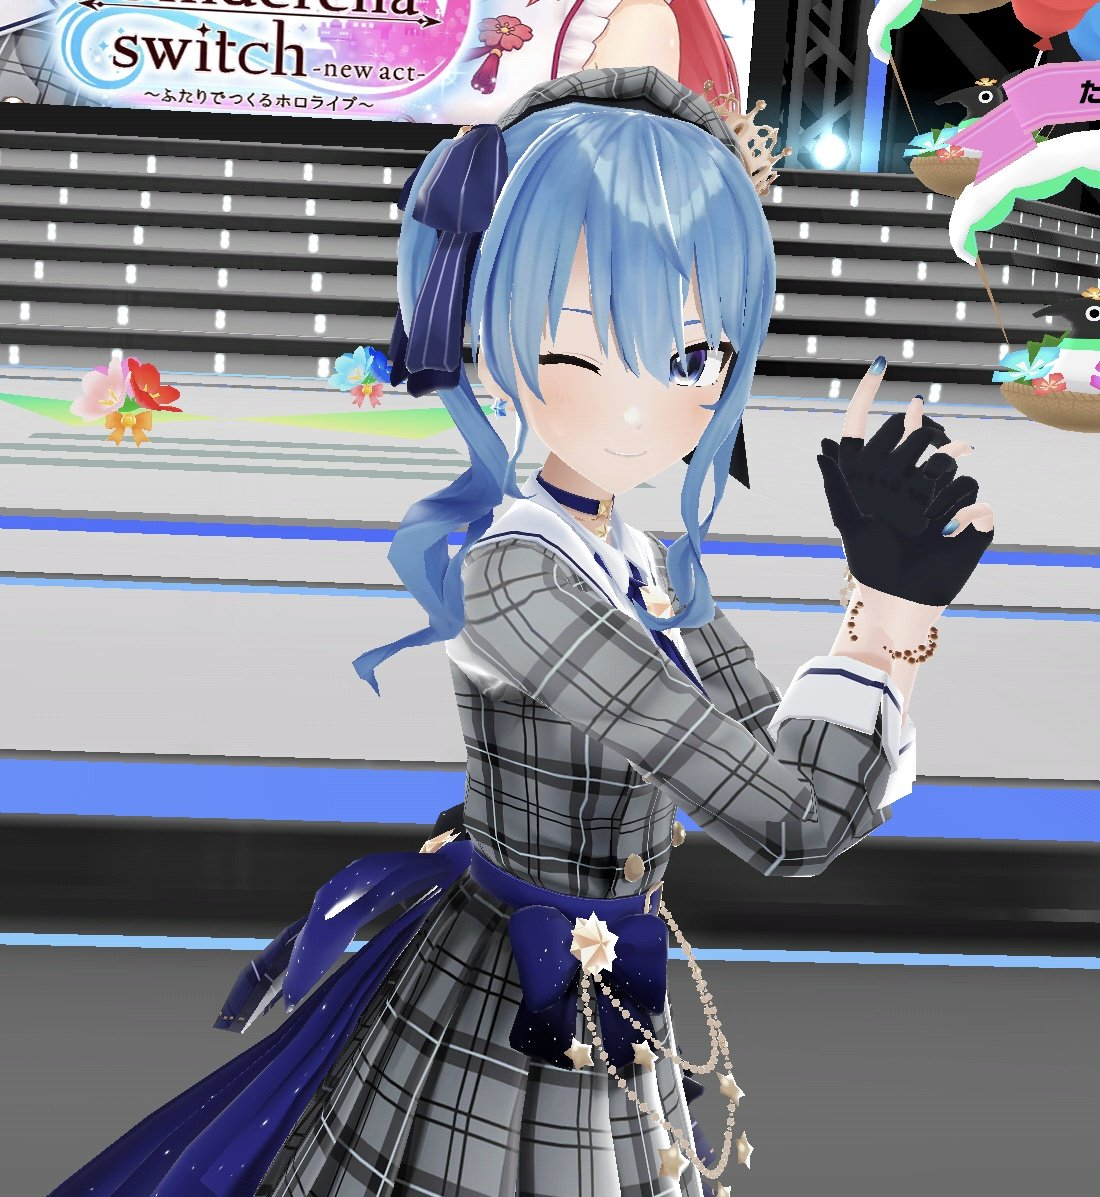 Oh yeah! One more screenshot! I took this one specifically for you guys! 💙🙌☺️ #ふたりでつくるホロライブ